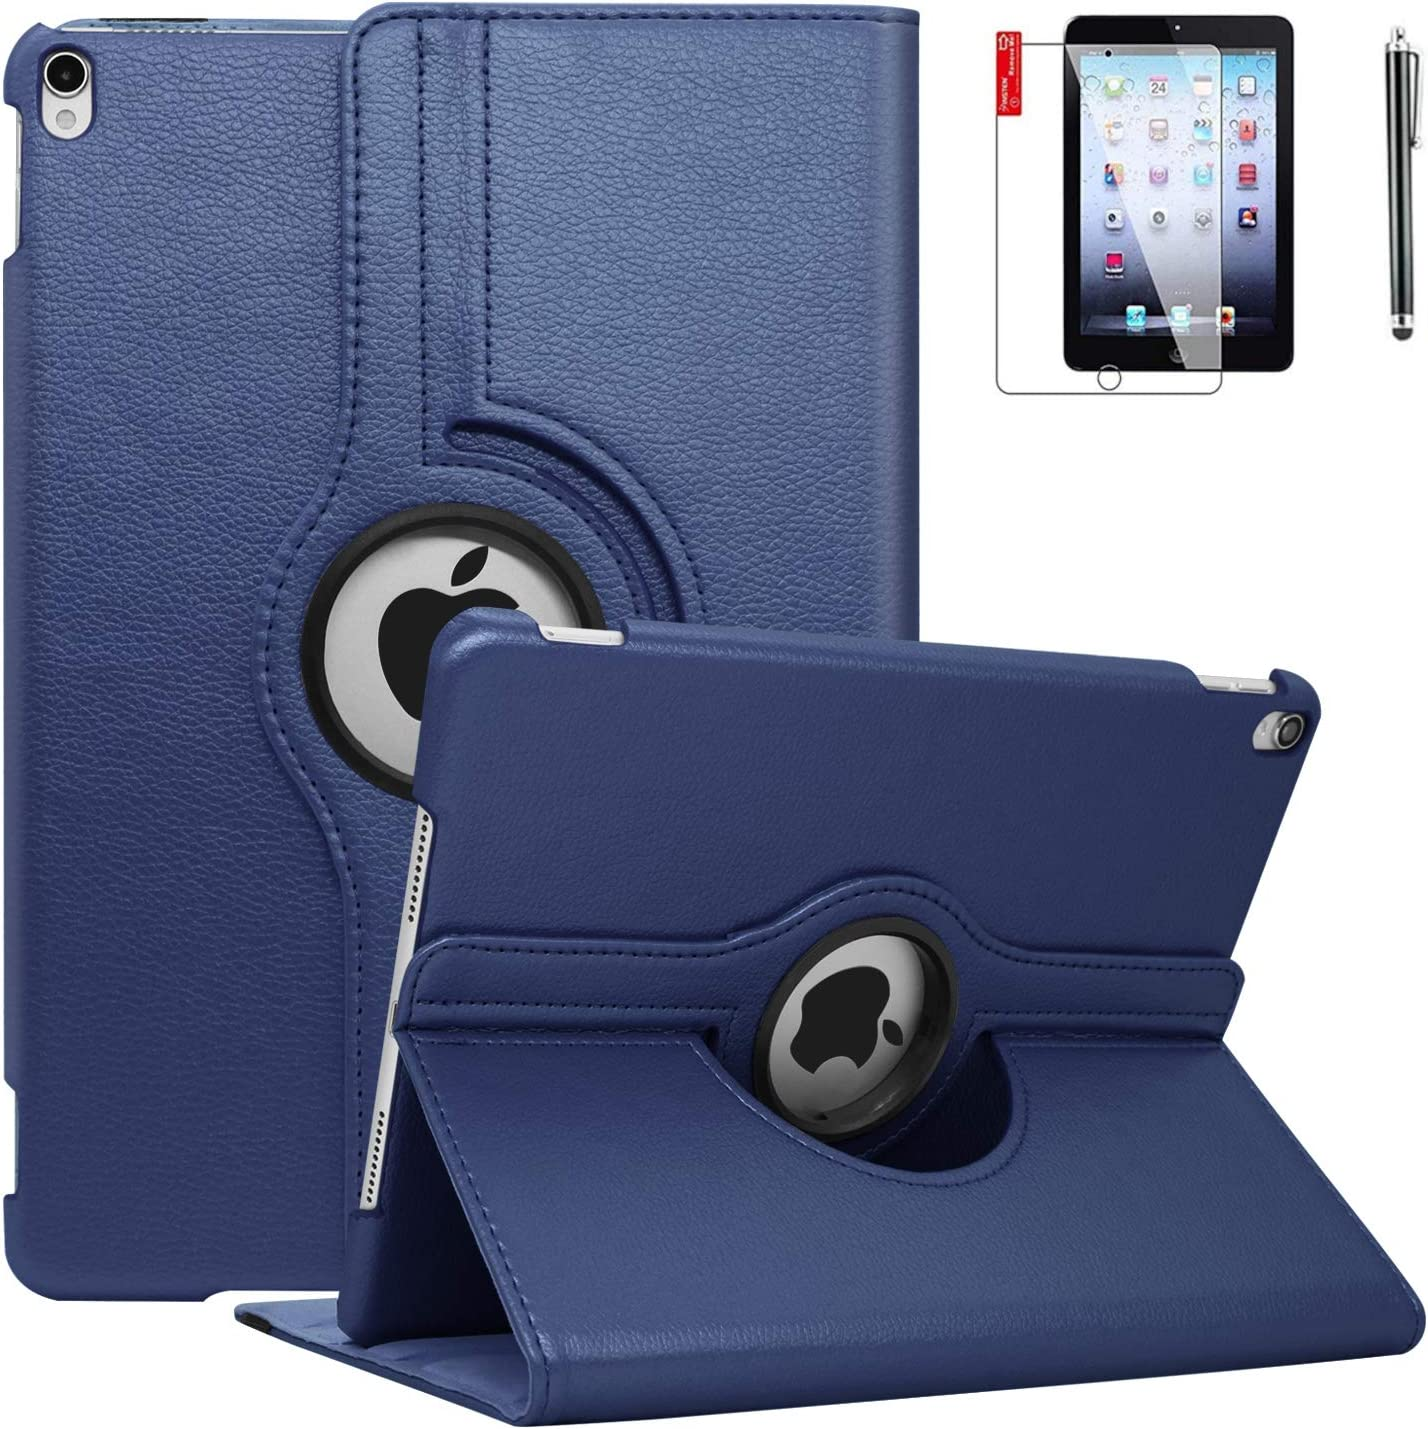 NEWQIANG iPad Air 1st Case Cover - 360 Degree Rotating Stand, Auto Sleep Wake - Fit for Model A1474 A1475 A1476 MD785LL/A MD876LL/A (A6 - Blue)